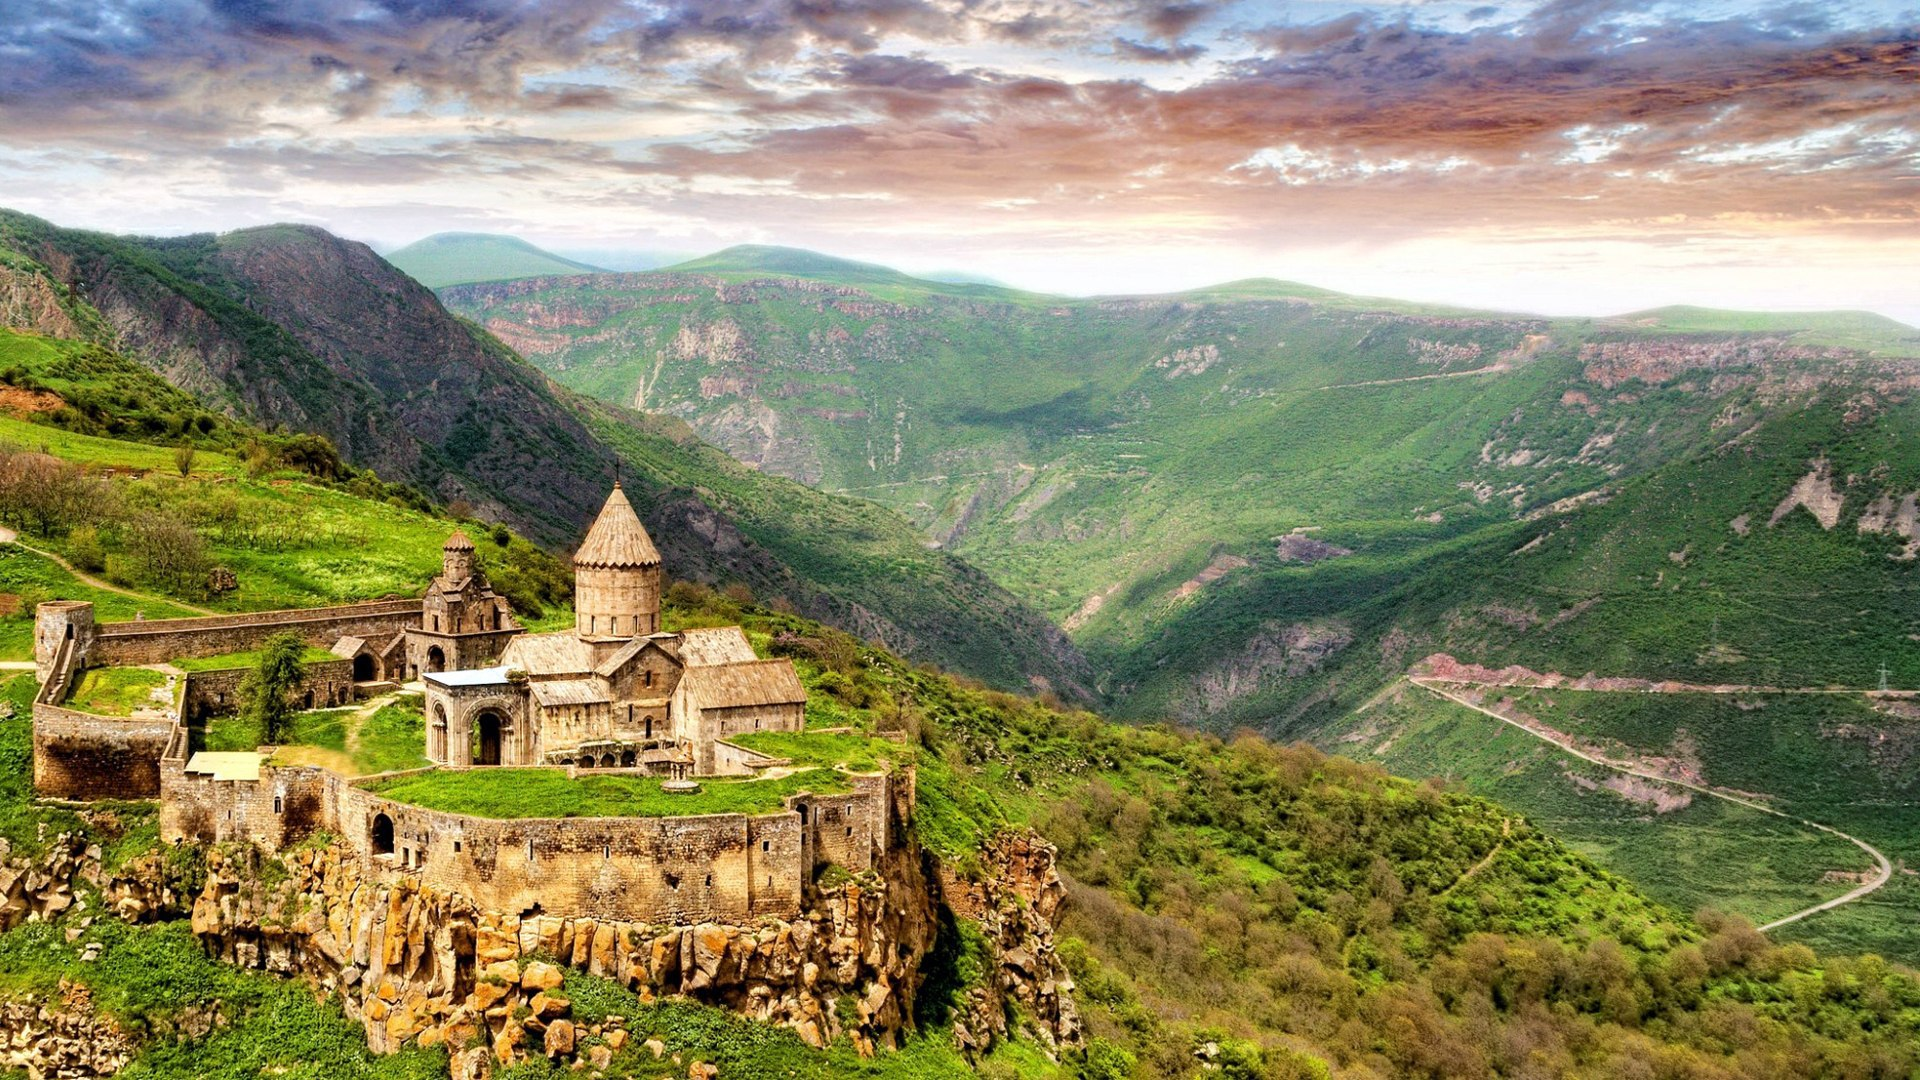 Lost Yourself In A Blend Of The Natural & Architectural Beauty Of Armenia